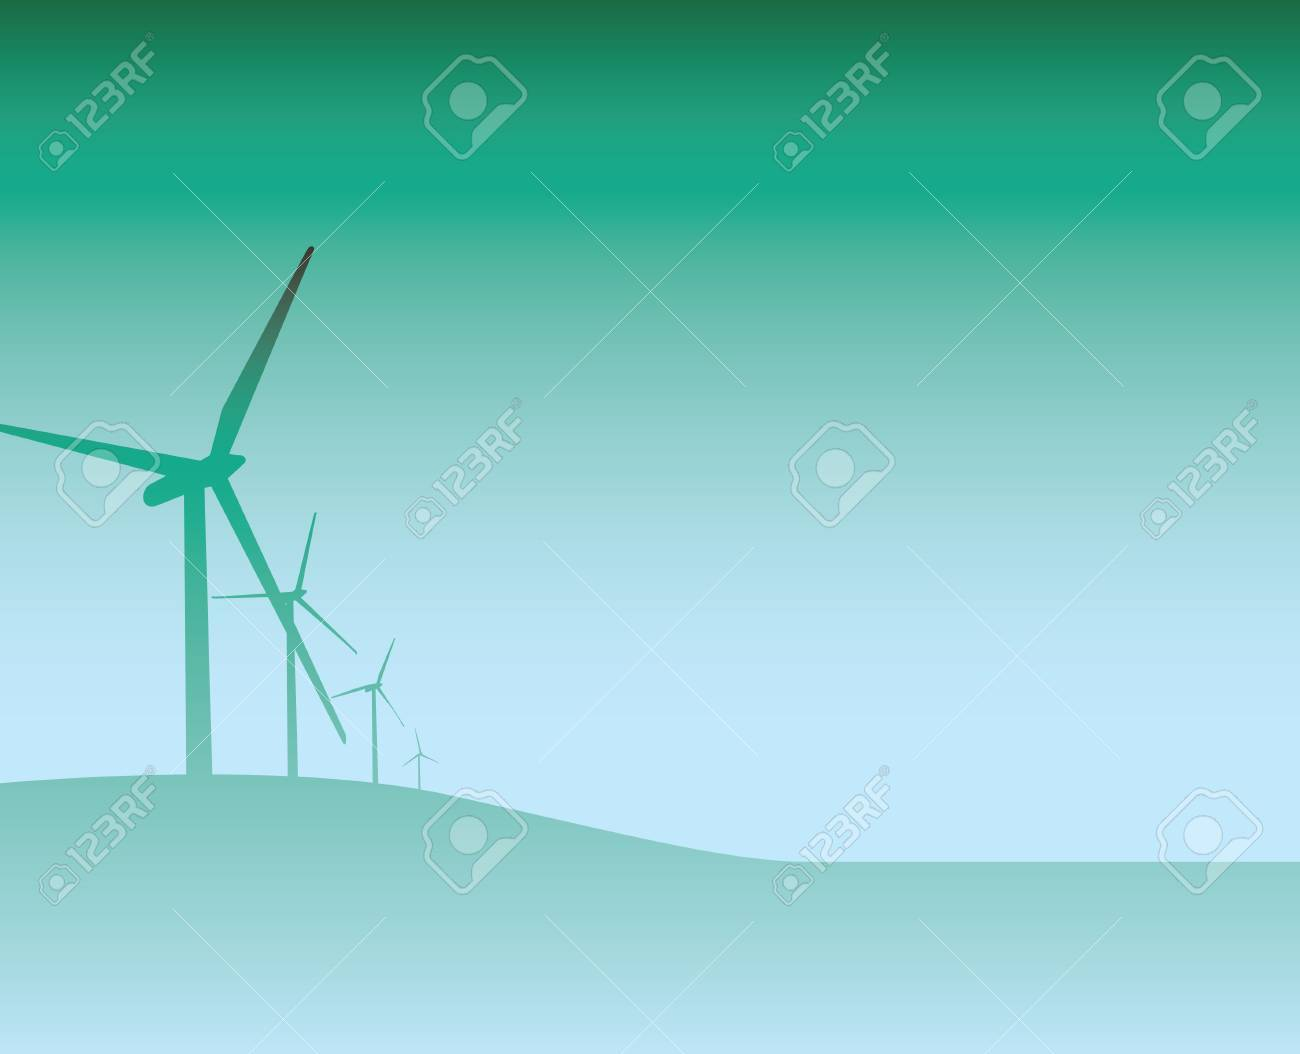 Illustration of  a blue and green wind turbine backdrop Stock Vector - 4773584